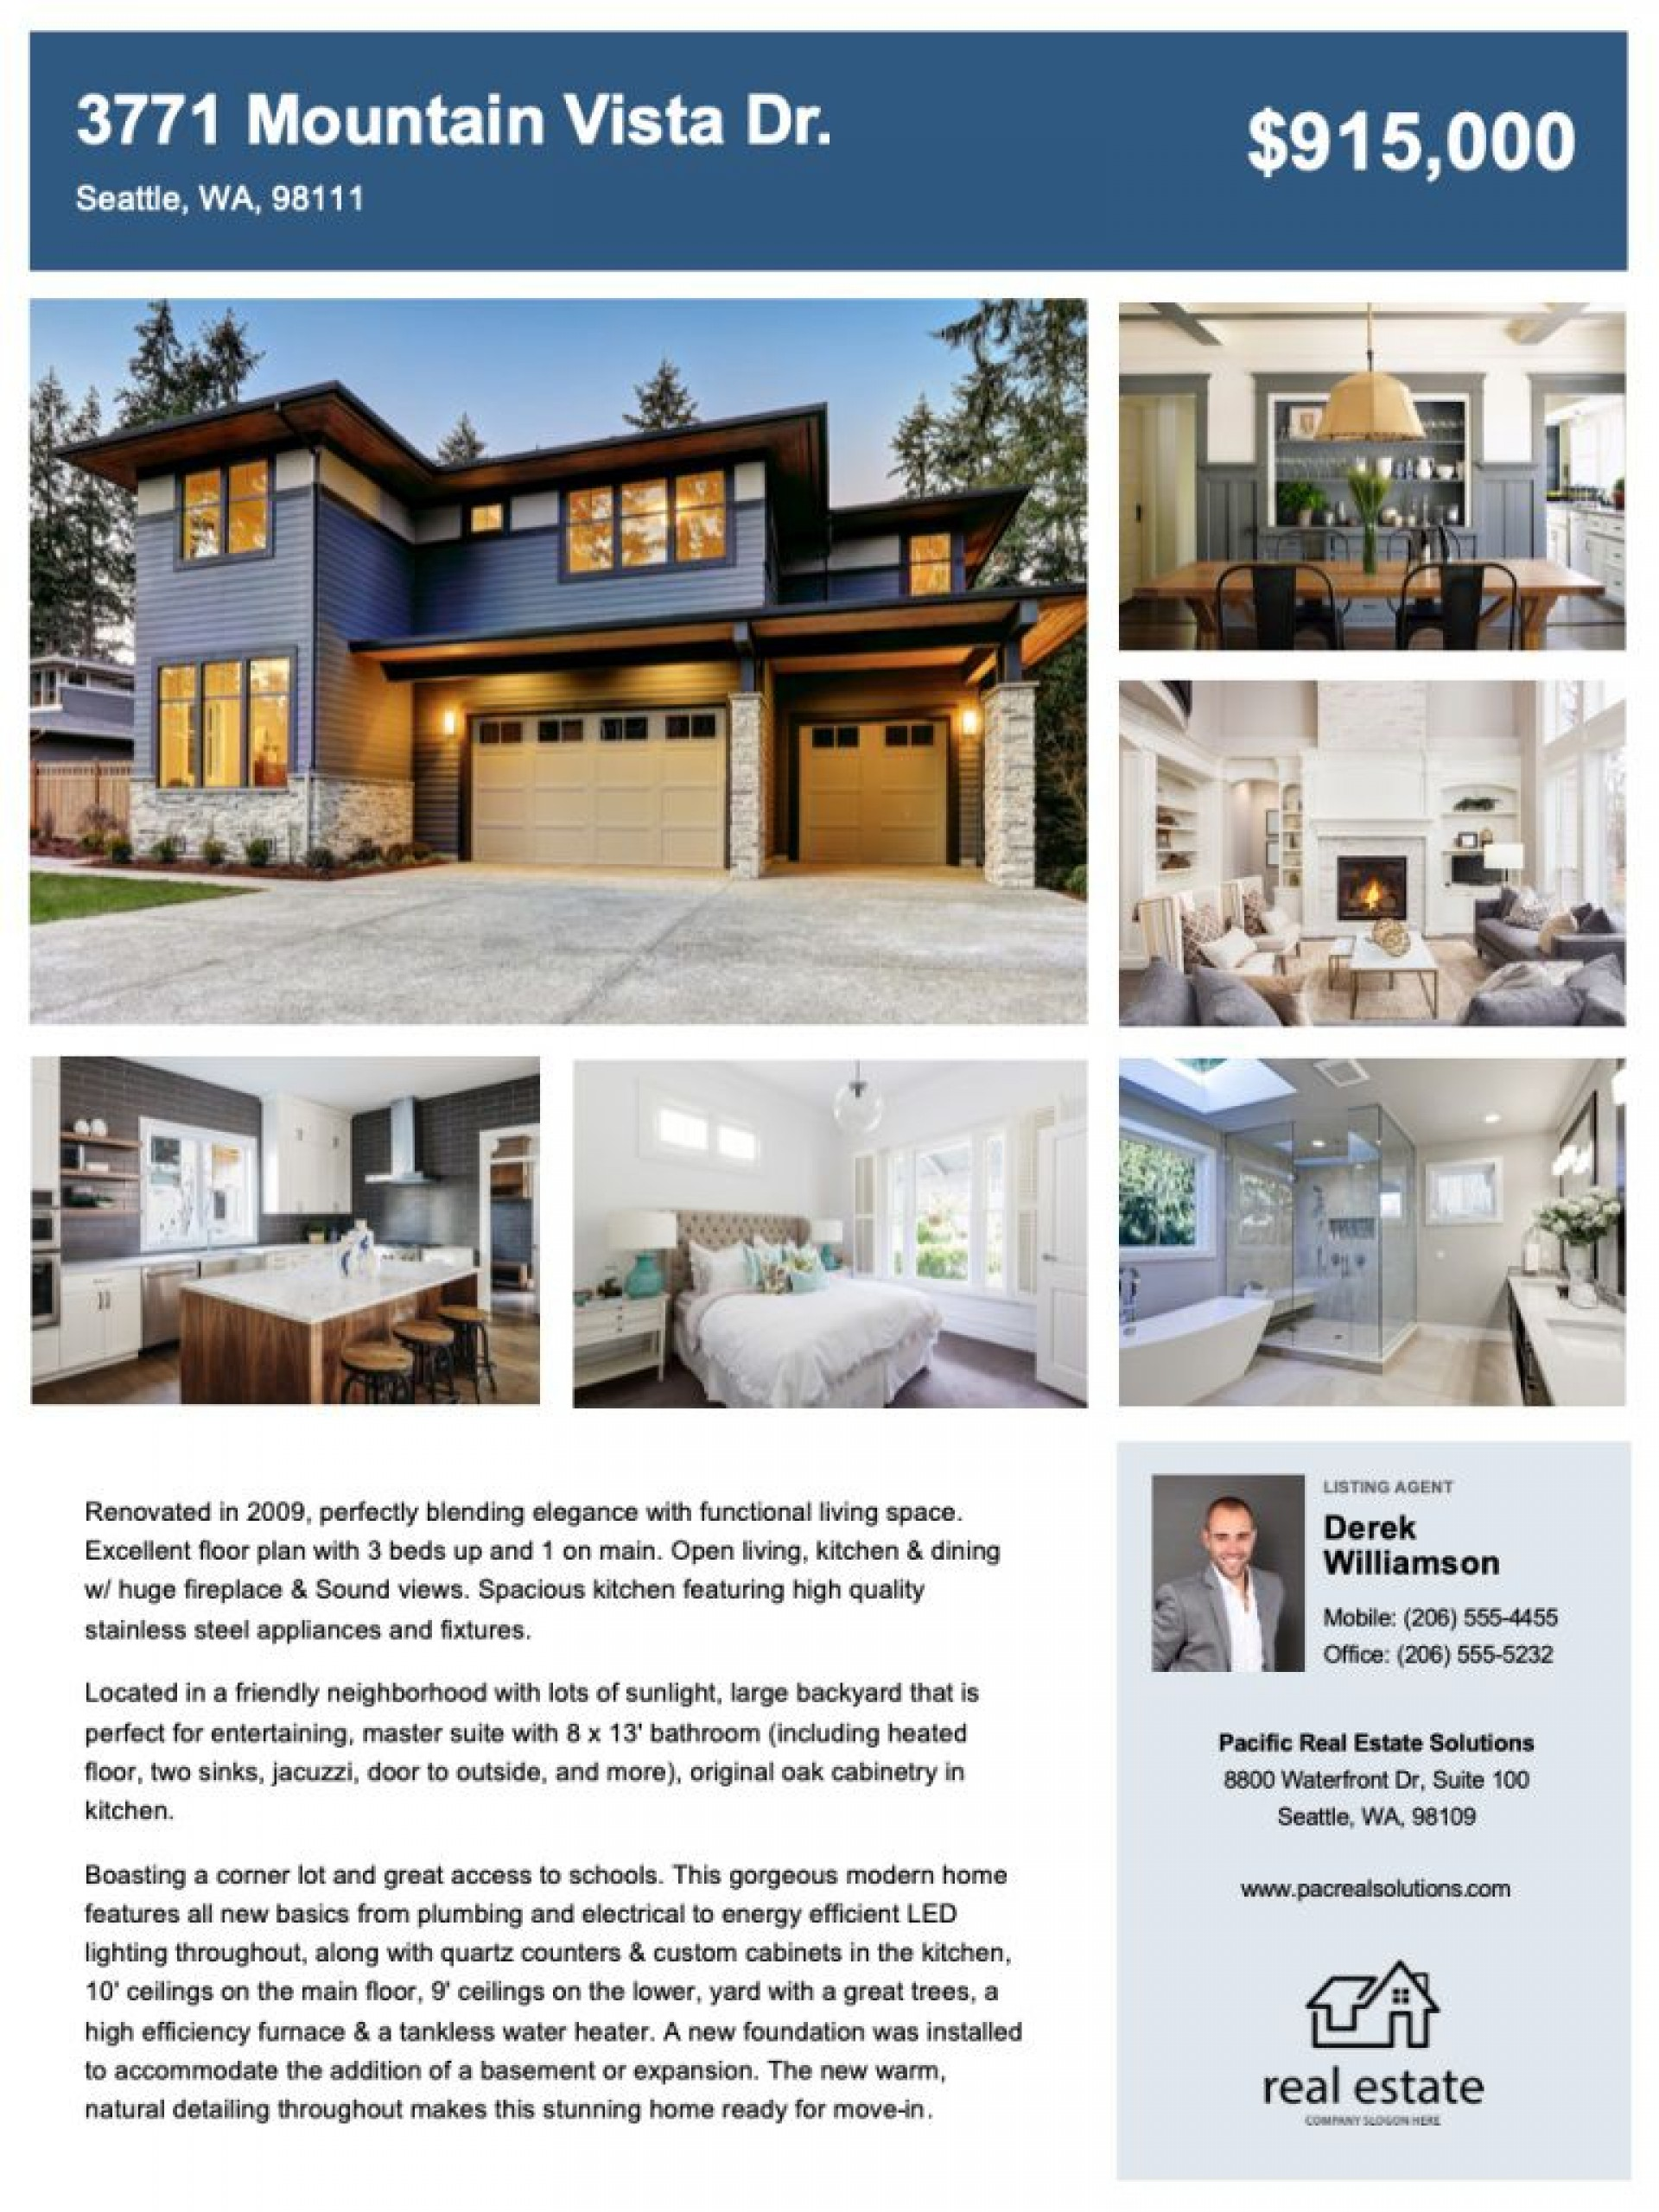 009 Striking House For Sale Flyer Template Inspiration  Free Real Estate Example By Owner1920